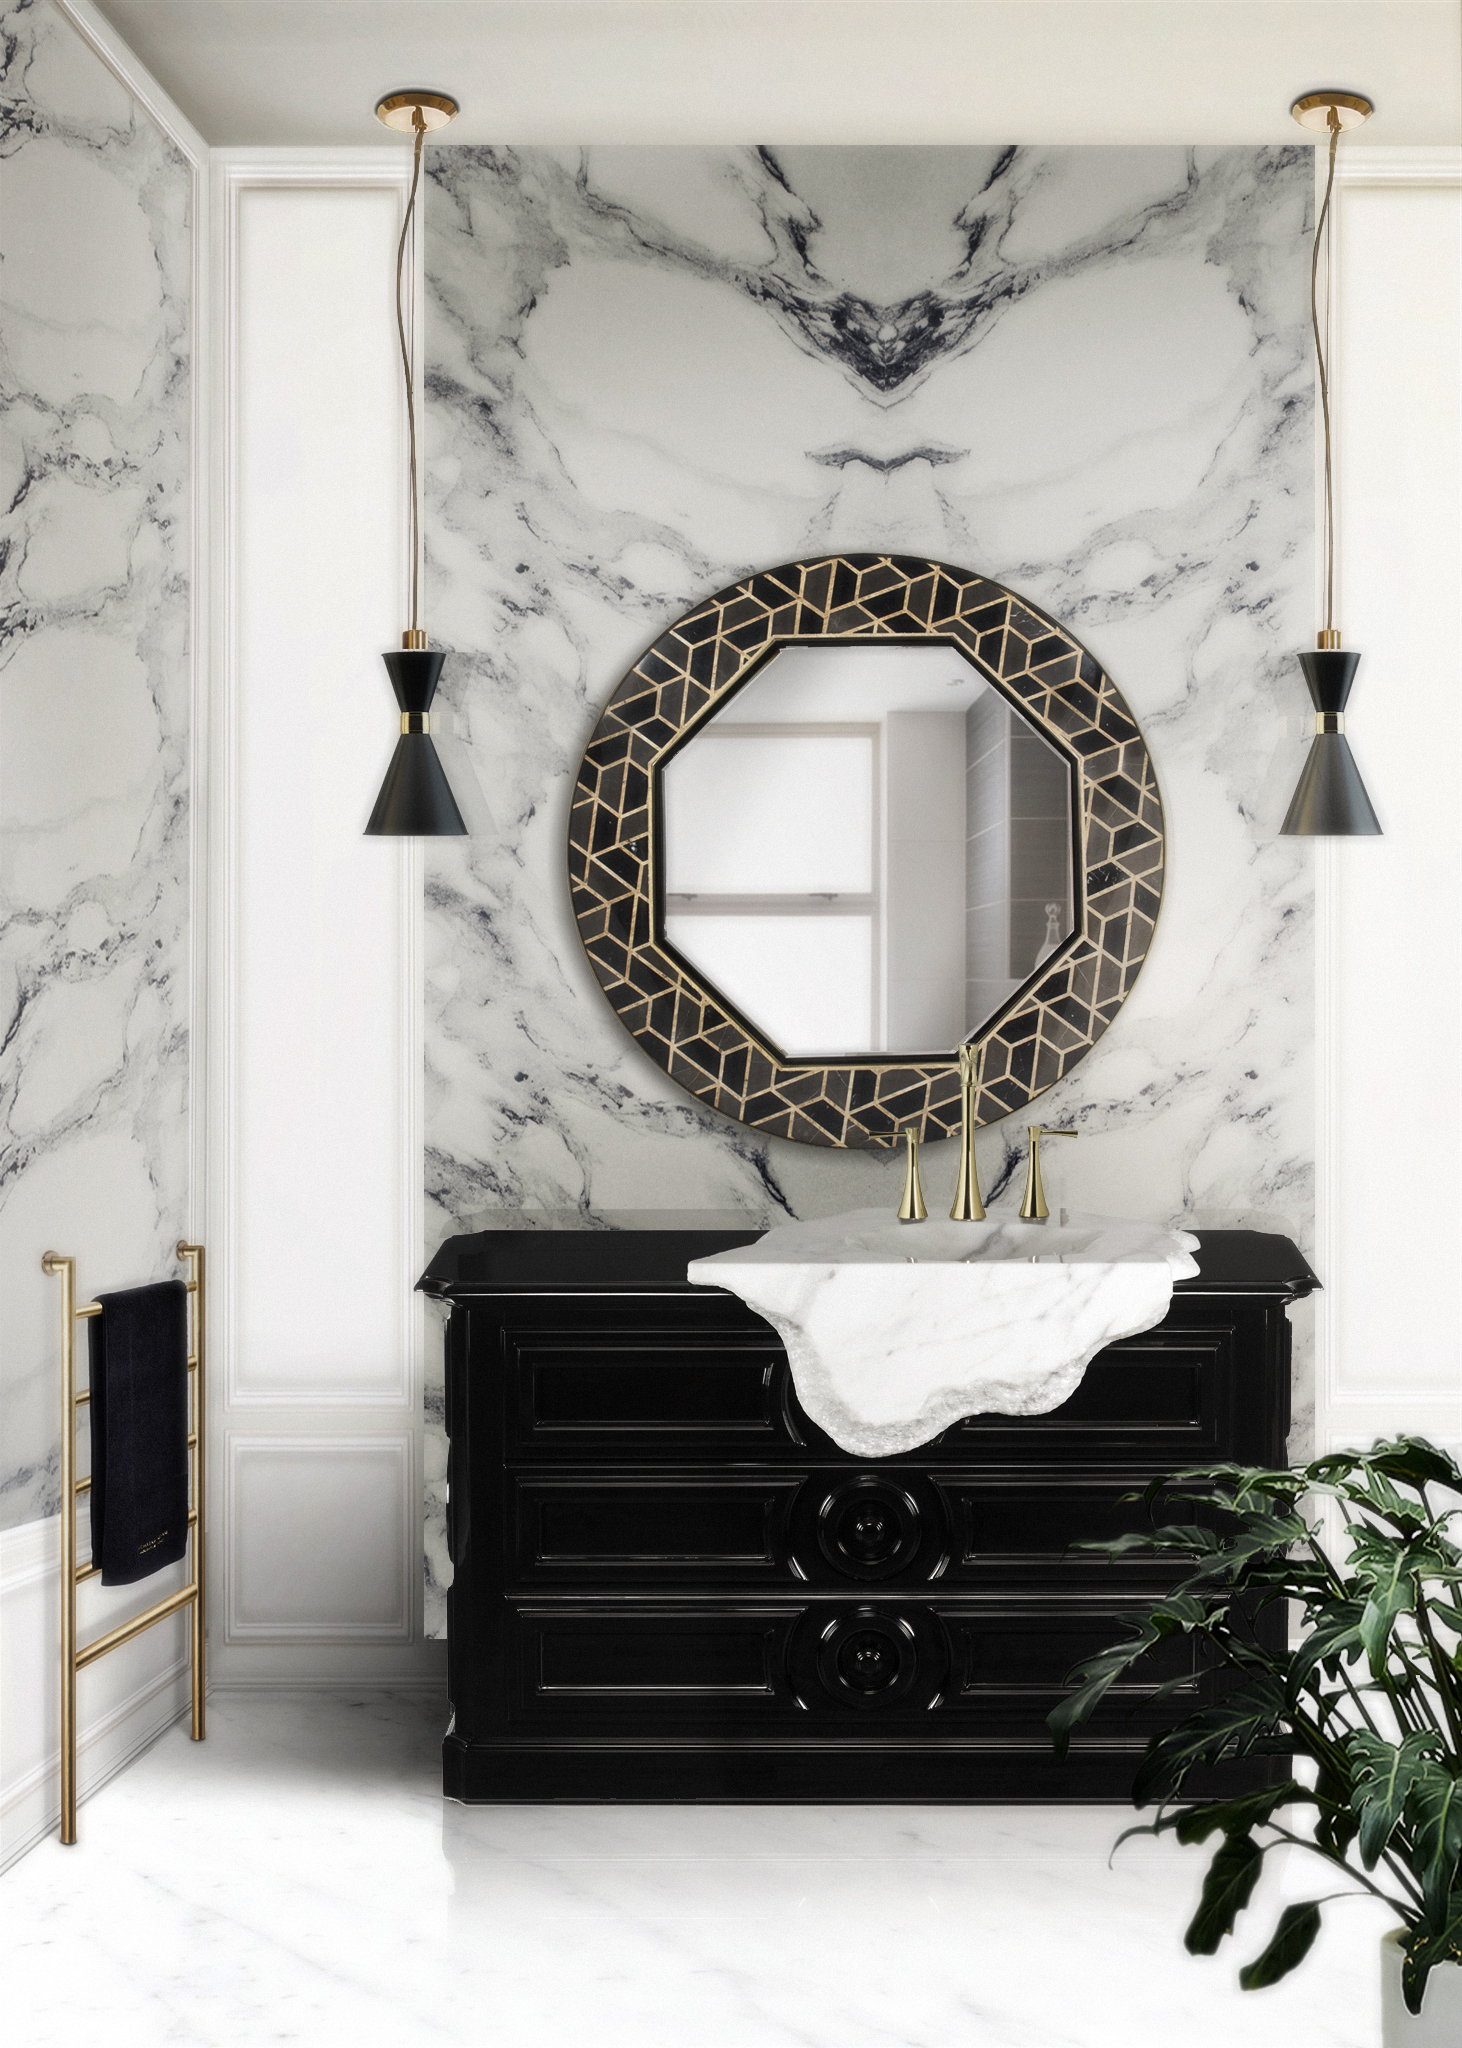 Luxury Washbasins: Products to Elevate your Bathroom Design luxury washbasins Luxury Washbasins: Products to Elevate your Bathroom Design 63 HR